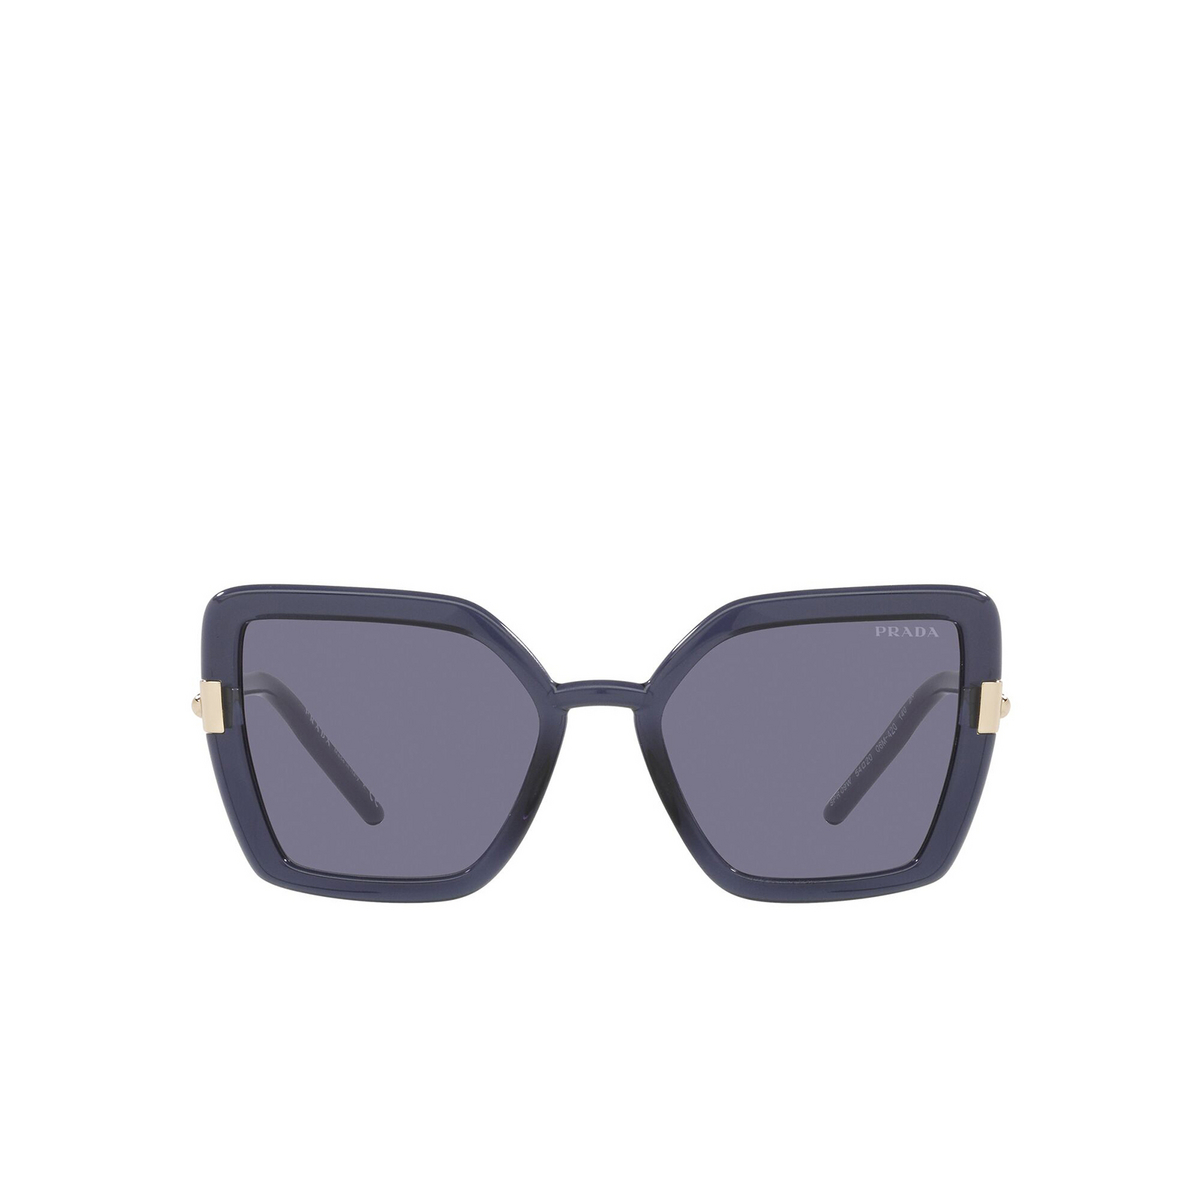 Prada® Butterfly Sunglasses: PR 09WS color Crystal Bluette 06M420 - front view.